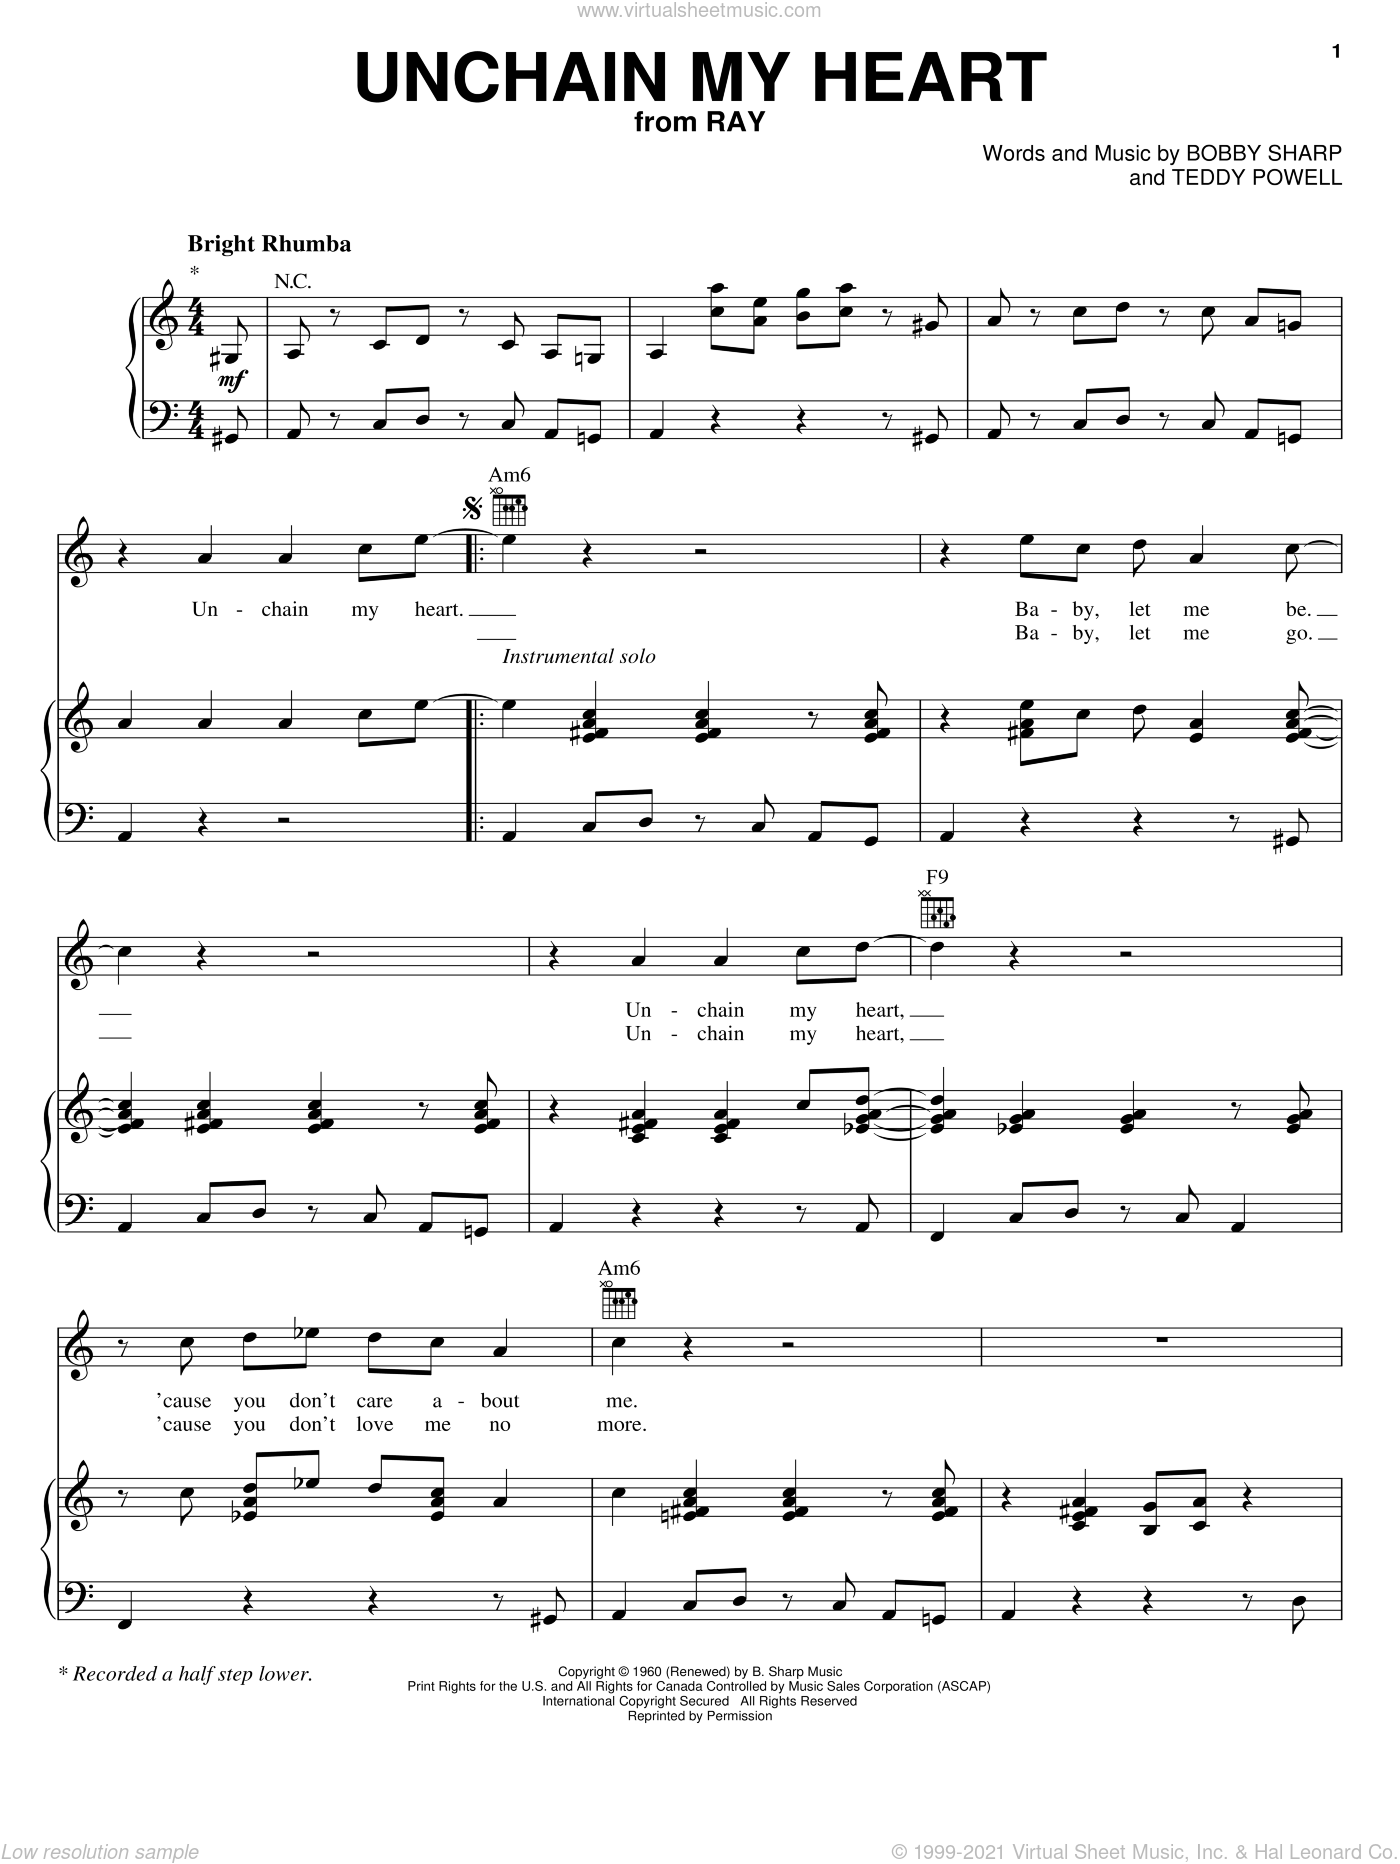 Unchain My Heart sheet music for voice, piano or guitar by Teddy Powell